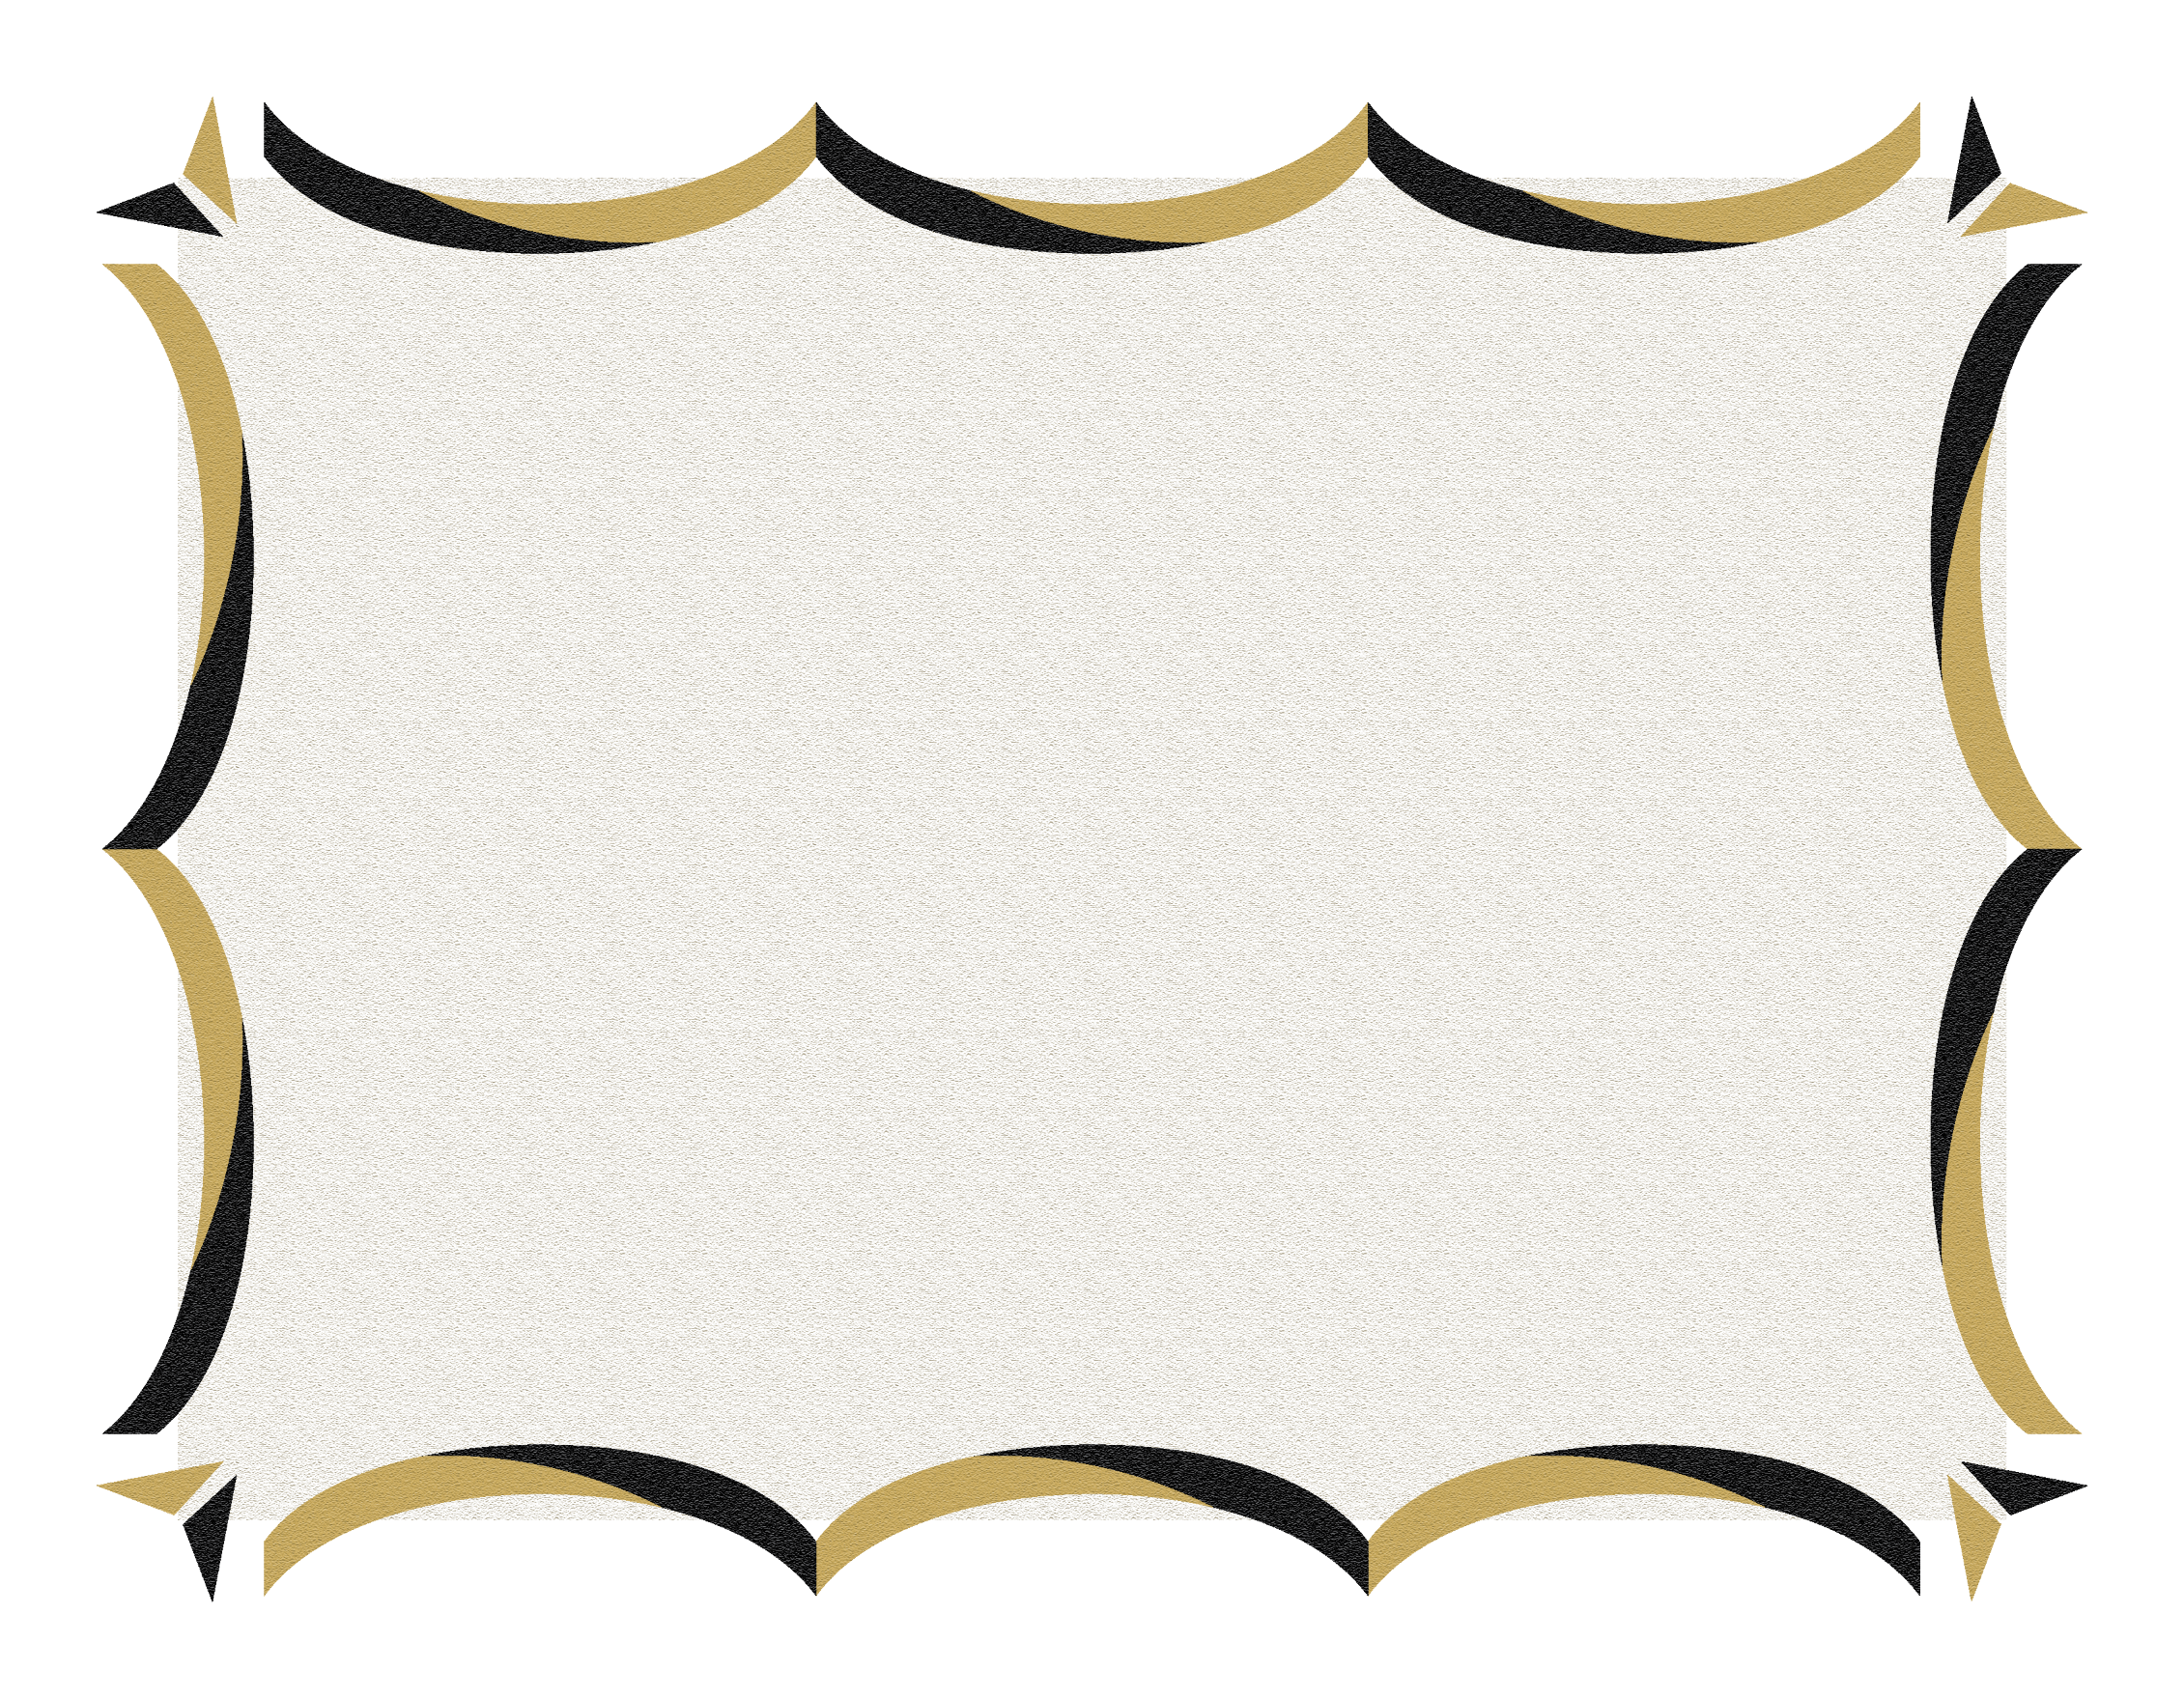 Certificate-Border-3-Black-and-Gold-PNG Sample Modern Newsletter Templates on sample newsletter titles for nursing, sample newsletter design, birthday card templates, sample newsletter styles, login templates, sample of nursing home newsletter, sample newsletter for daycare, sample church newsletters, sample teacher newsletters to parents, sample parent newsletter day care, sample newsletter front and back, sample of a company newsletter, sample software, blog templates, sample newsletter content, sample insurance newsletters, sample human resources newsletter, application templates, sample parent newsletter from teacher, calendar templates,